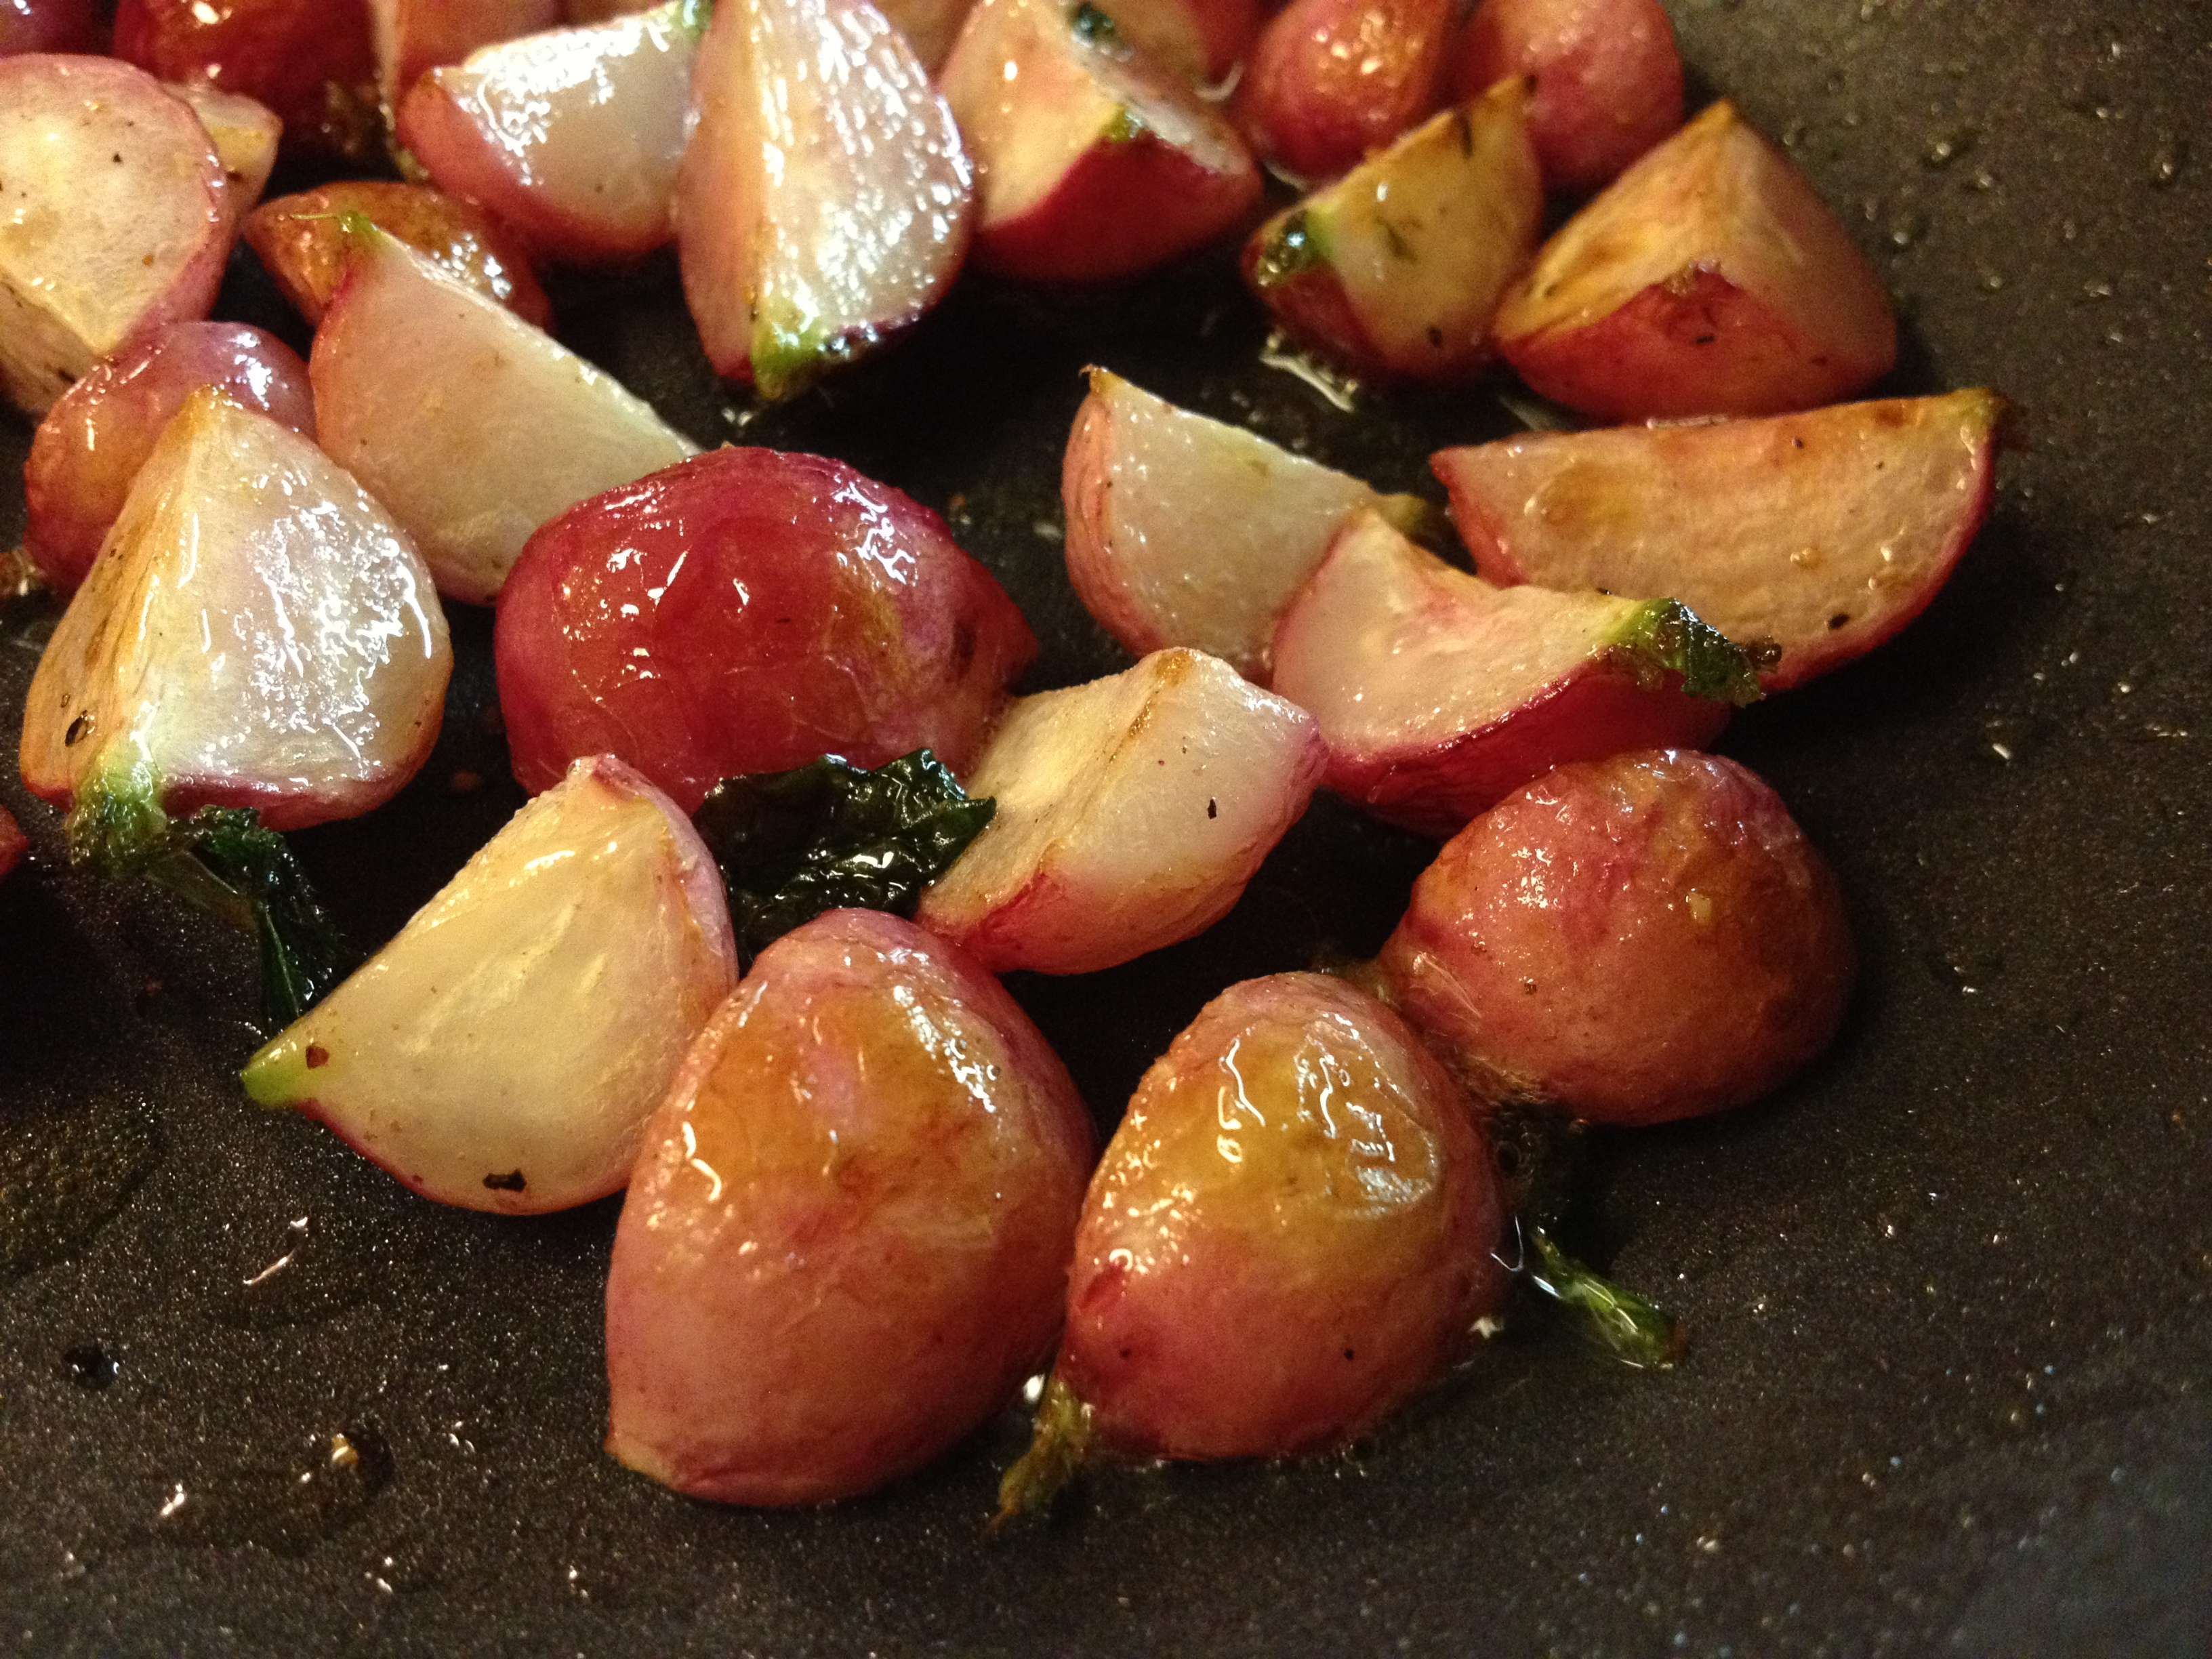 Roasted radishes are sweet and delicious!